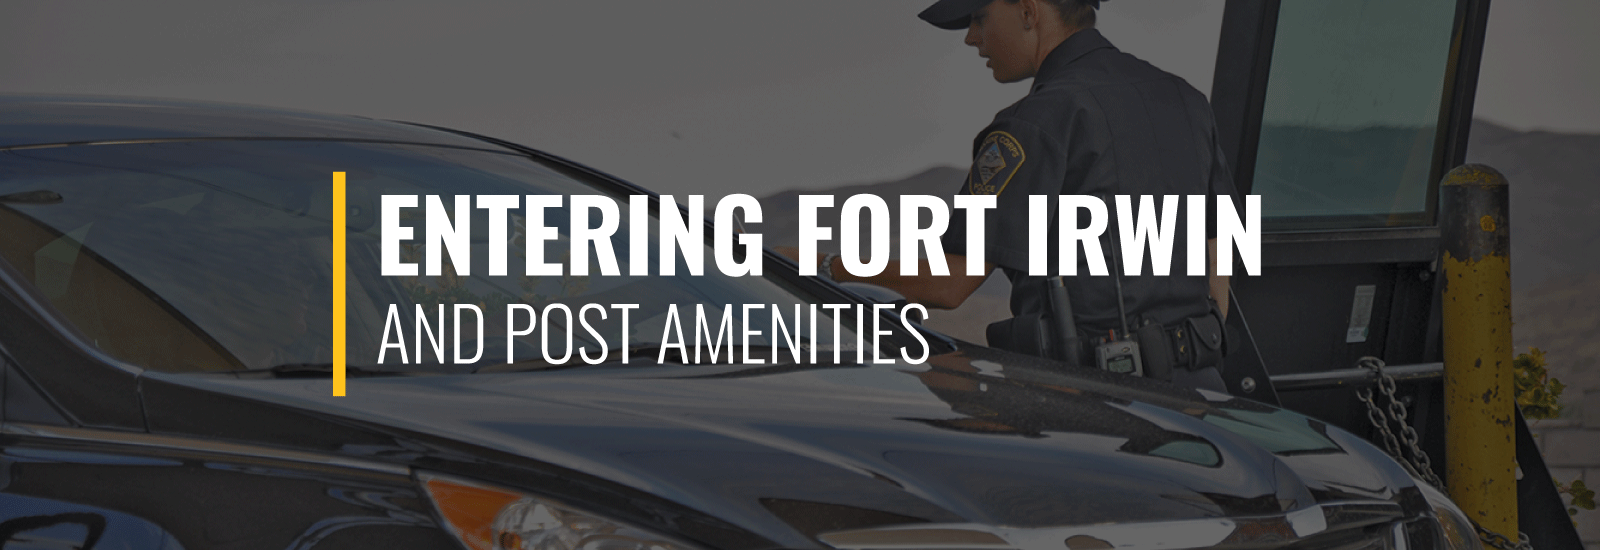 Entering Fort Irwin and Post Amenities